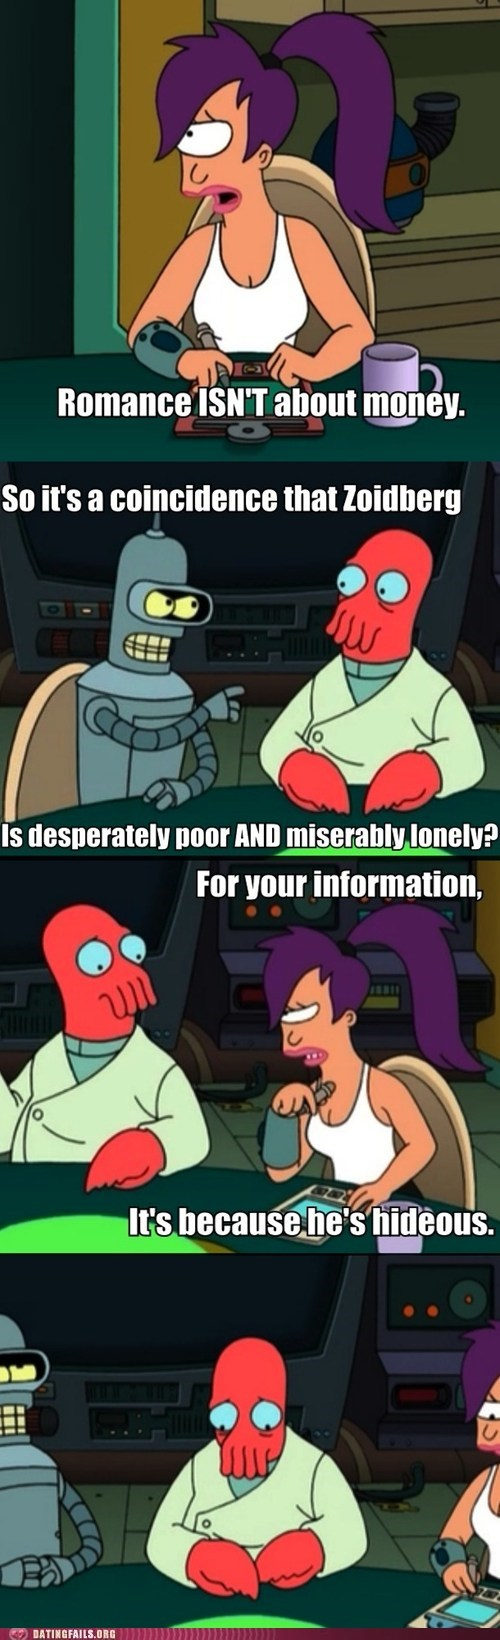 bender forever a zoidberg futurama Hall of Fame leela romance and money too ugly - 6128542976